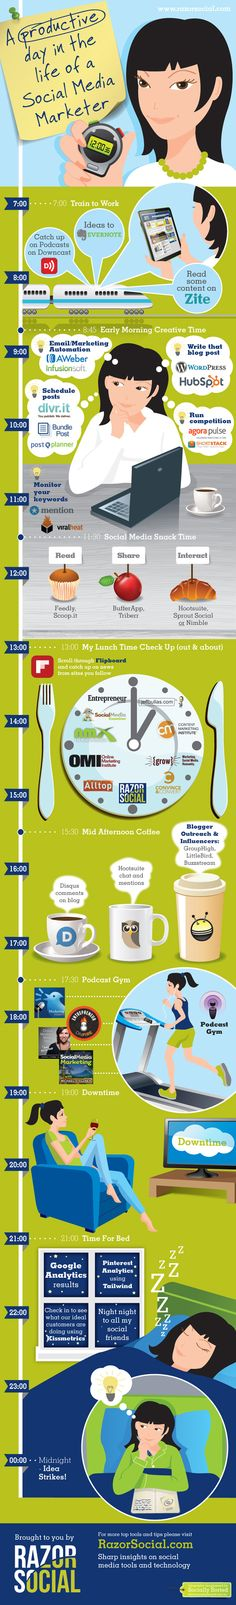 A Day in the Life of a Social Media Marketer [Infographic]